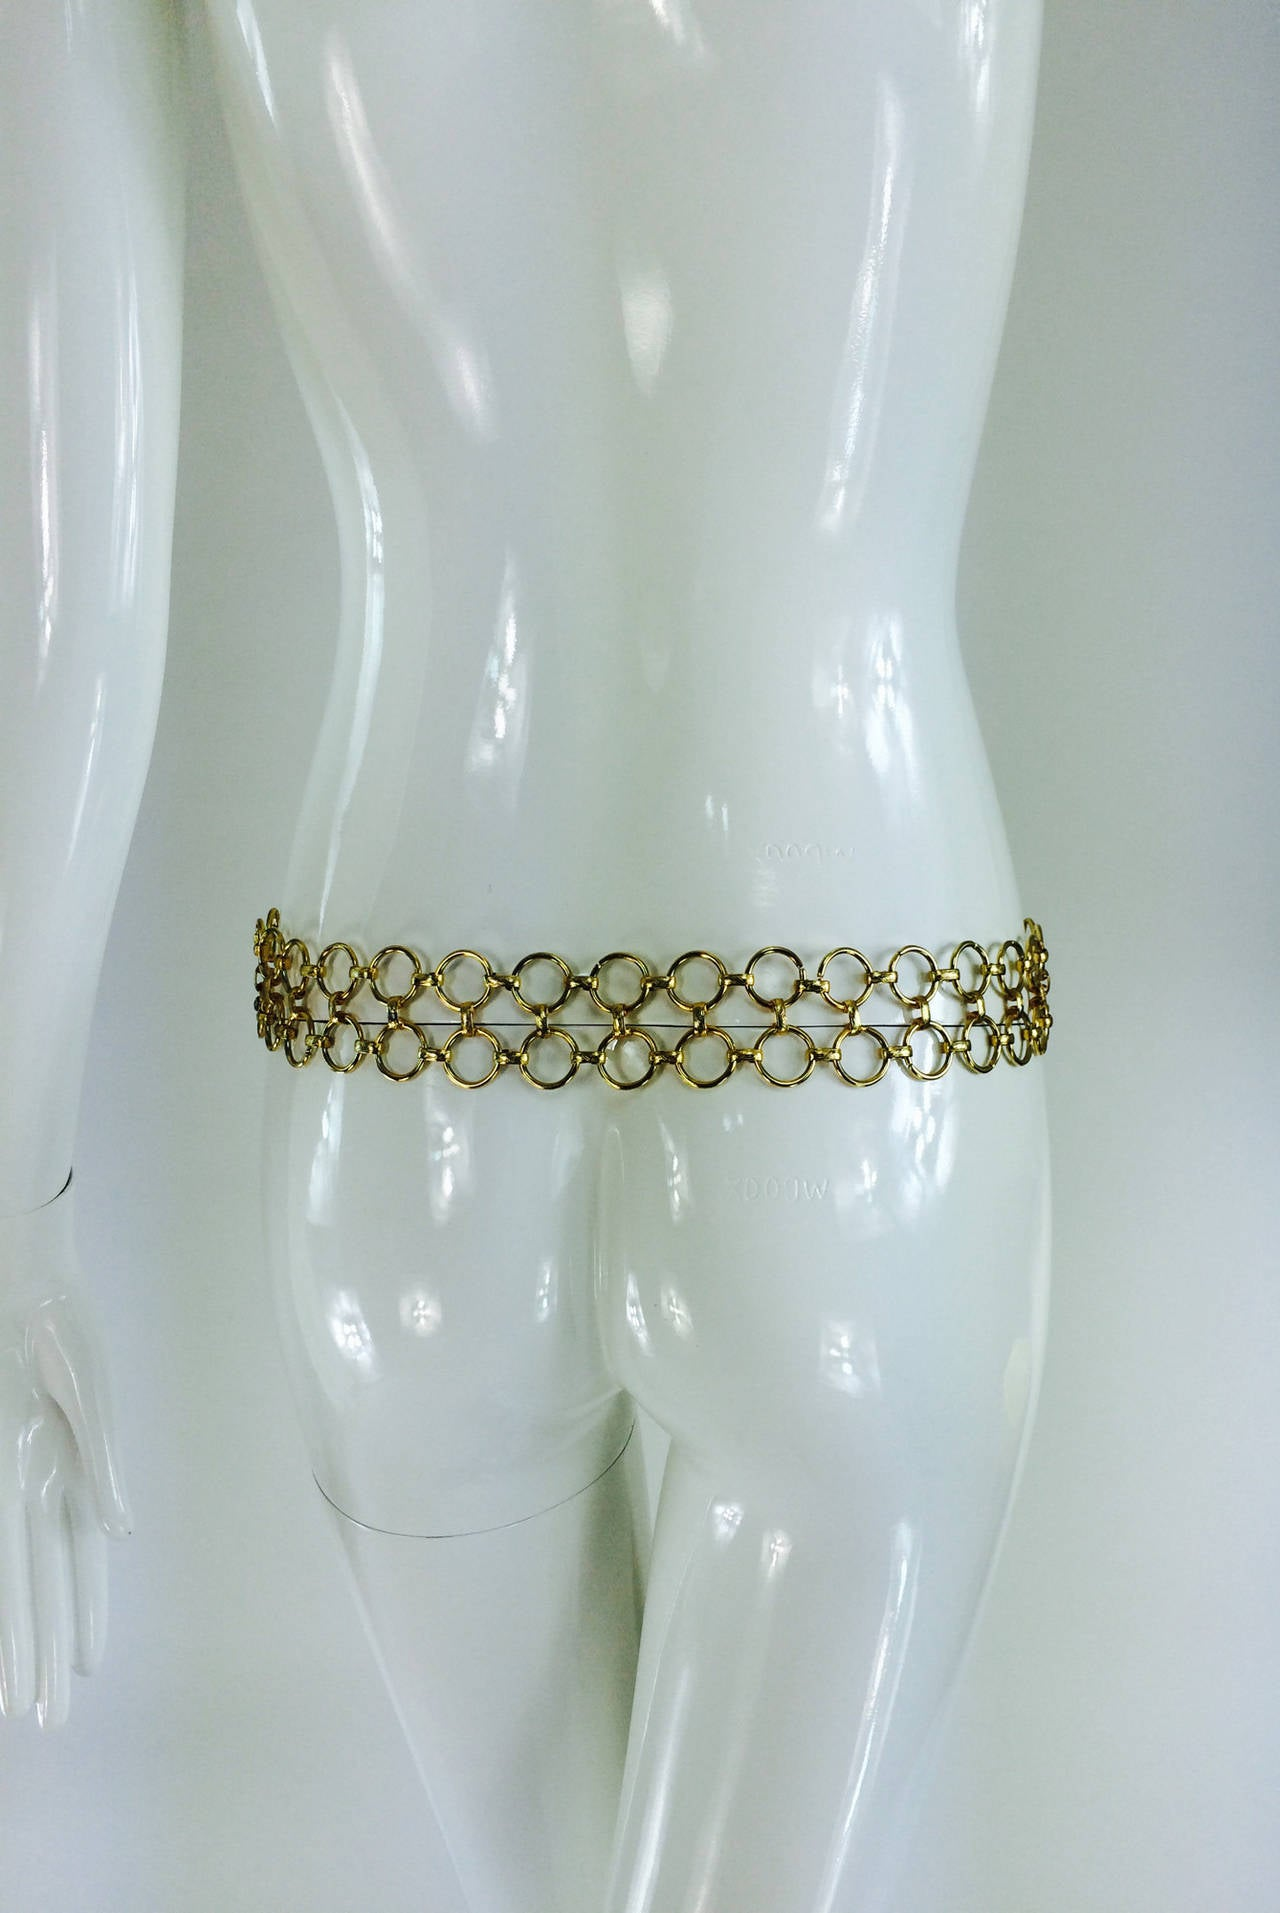 1970s Christian Dior jungle safari chain belt 6